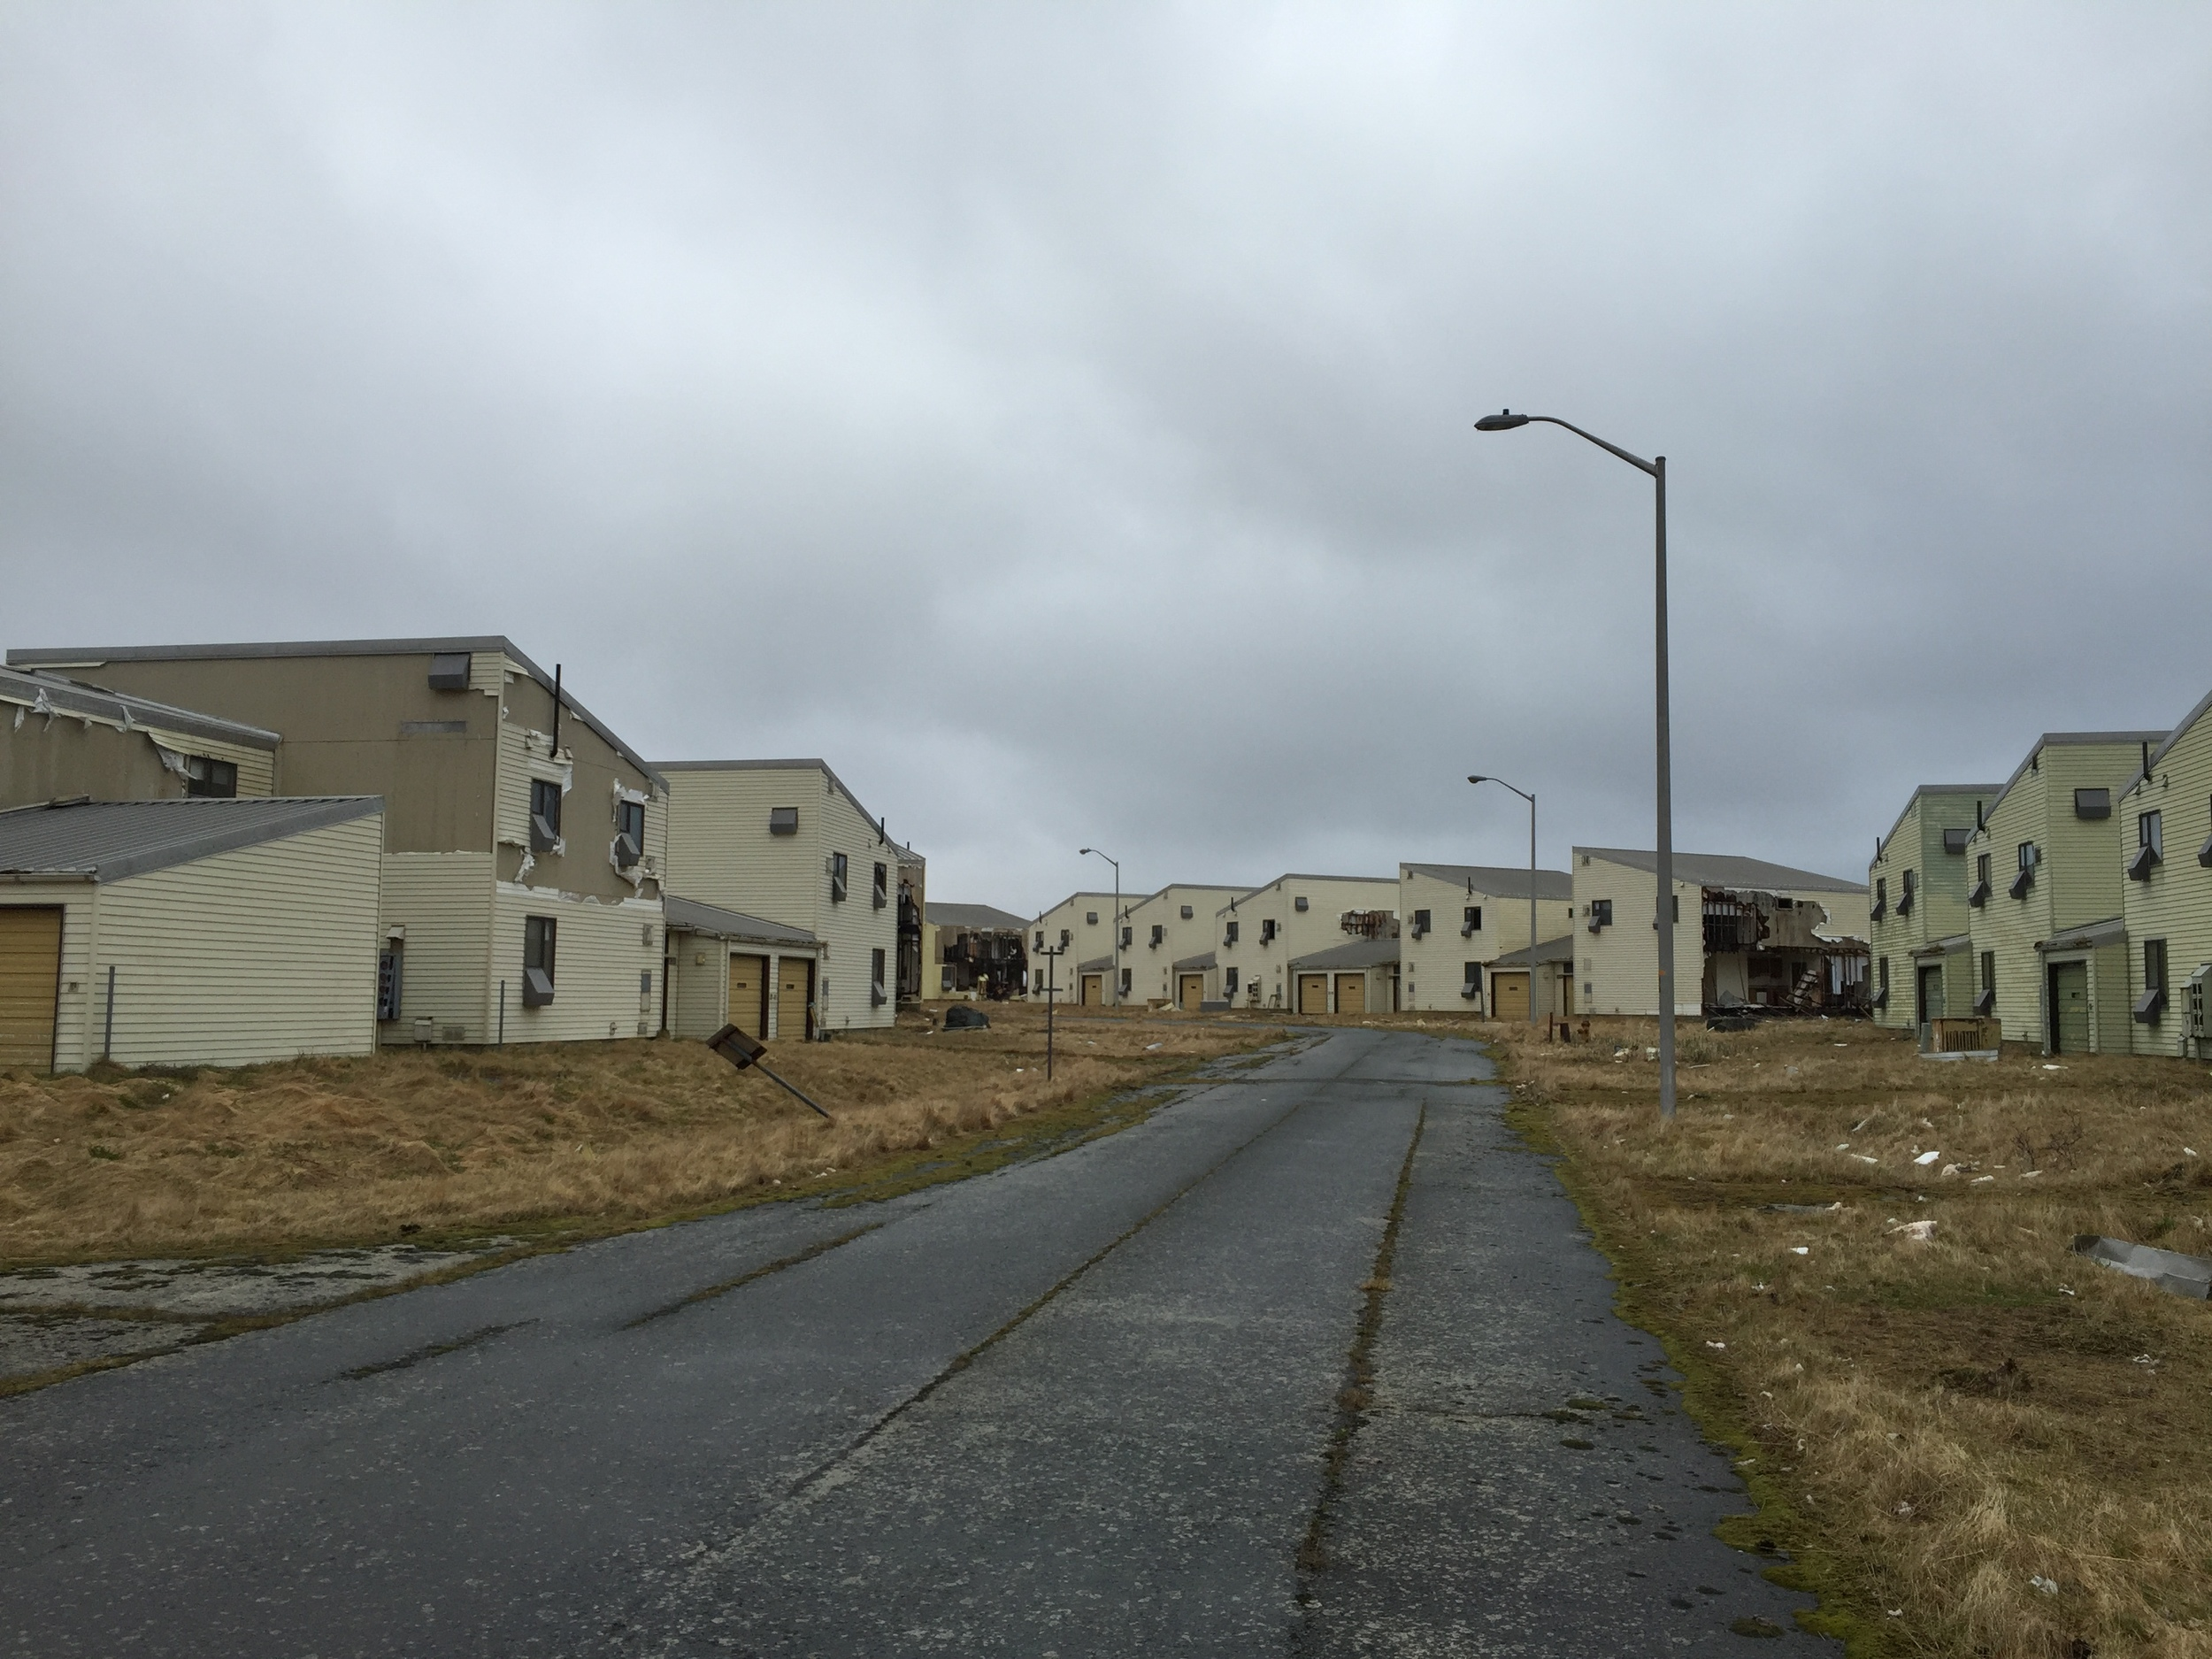 Abandoned houses ripped by winds slowly break down piece by piece, becoming part of the Adak landscape